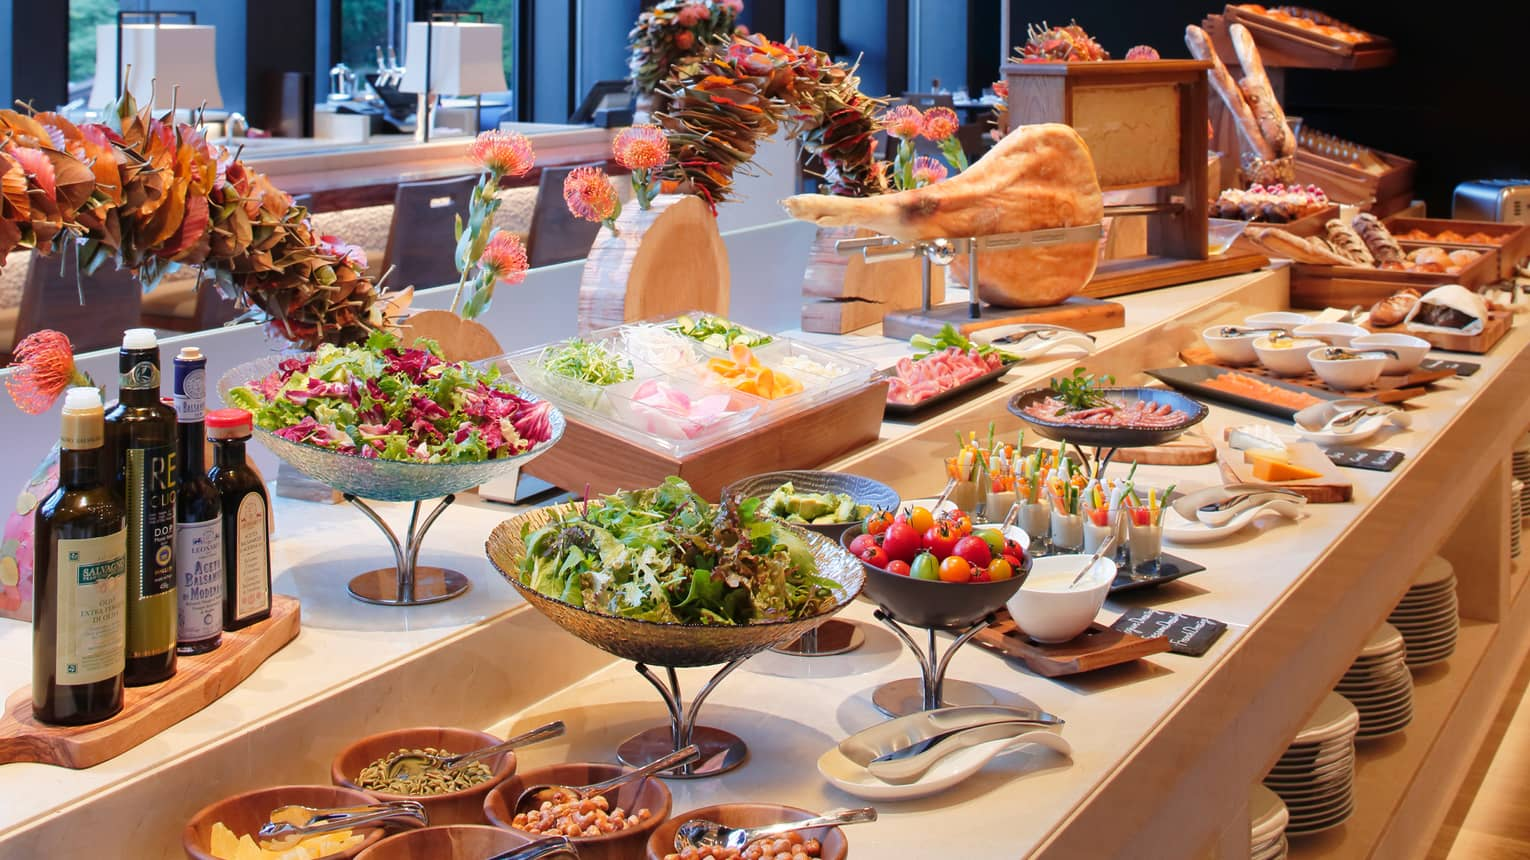 Brasserie breakfast buffet with bowls of fresh fruit, salads